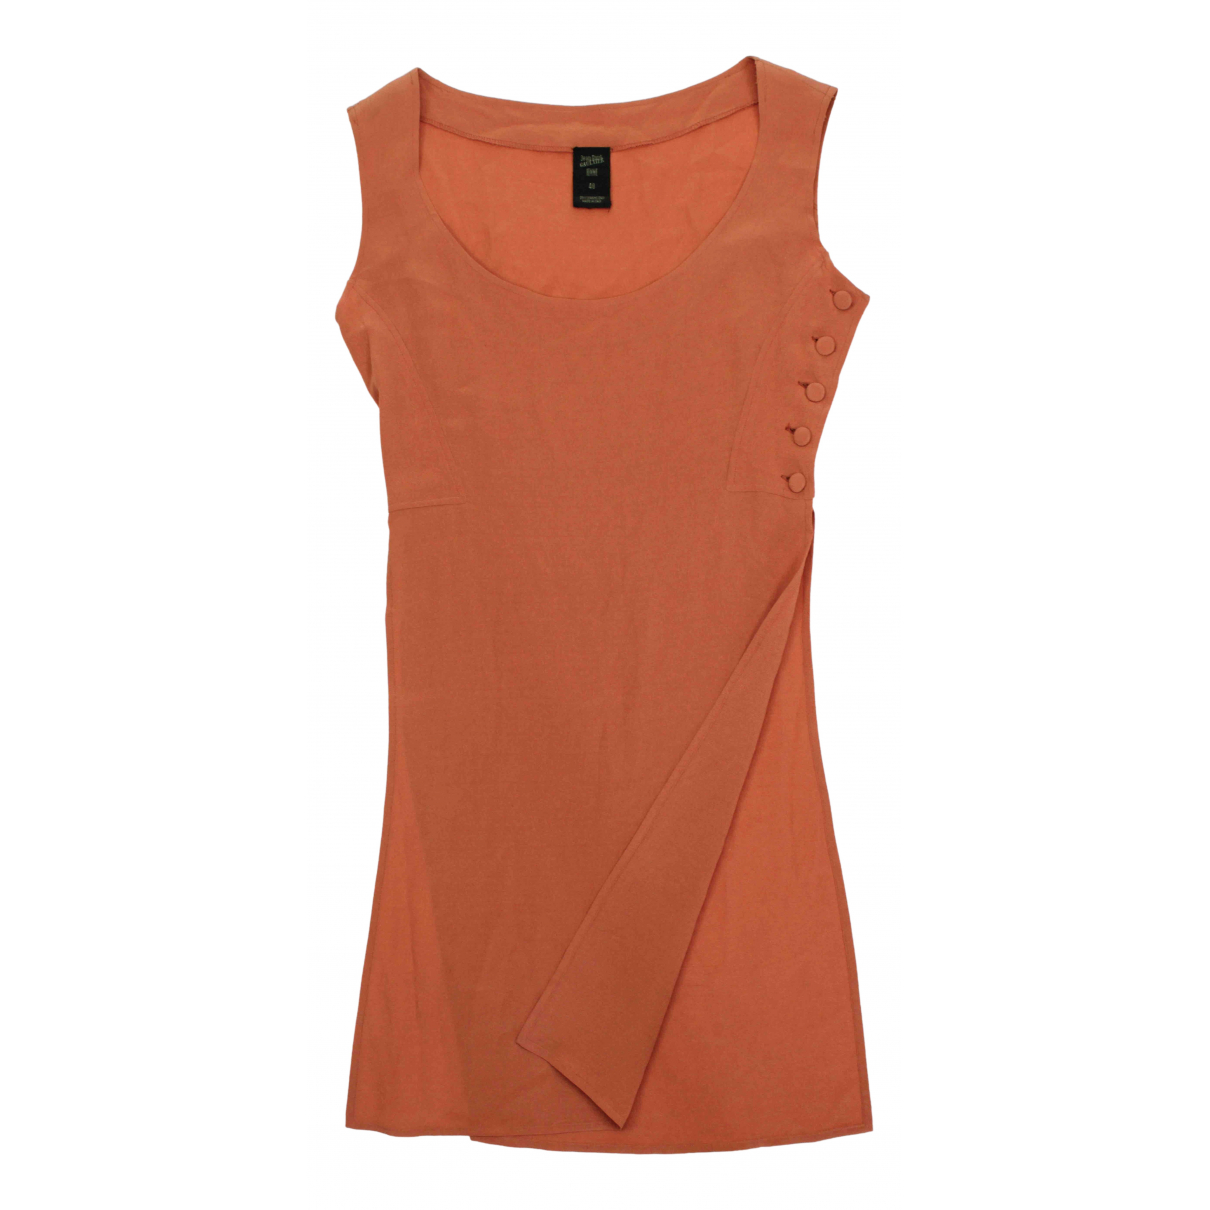 Jean Paul Gaultier \N Kleid in  Orange Viskose